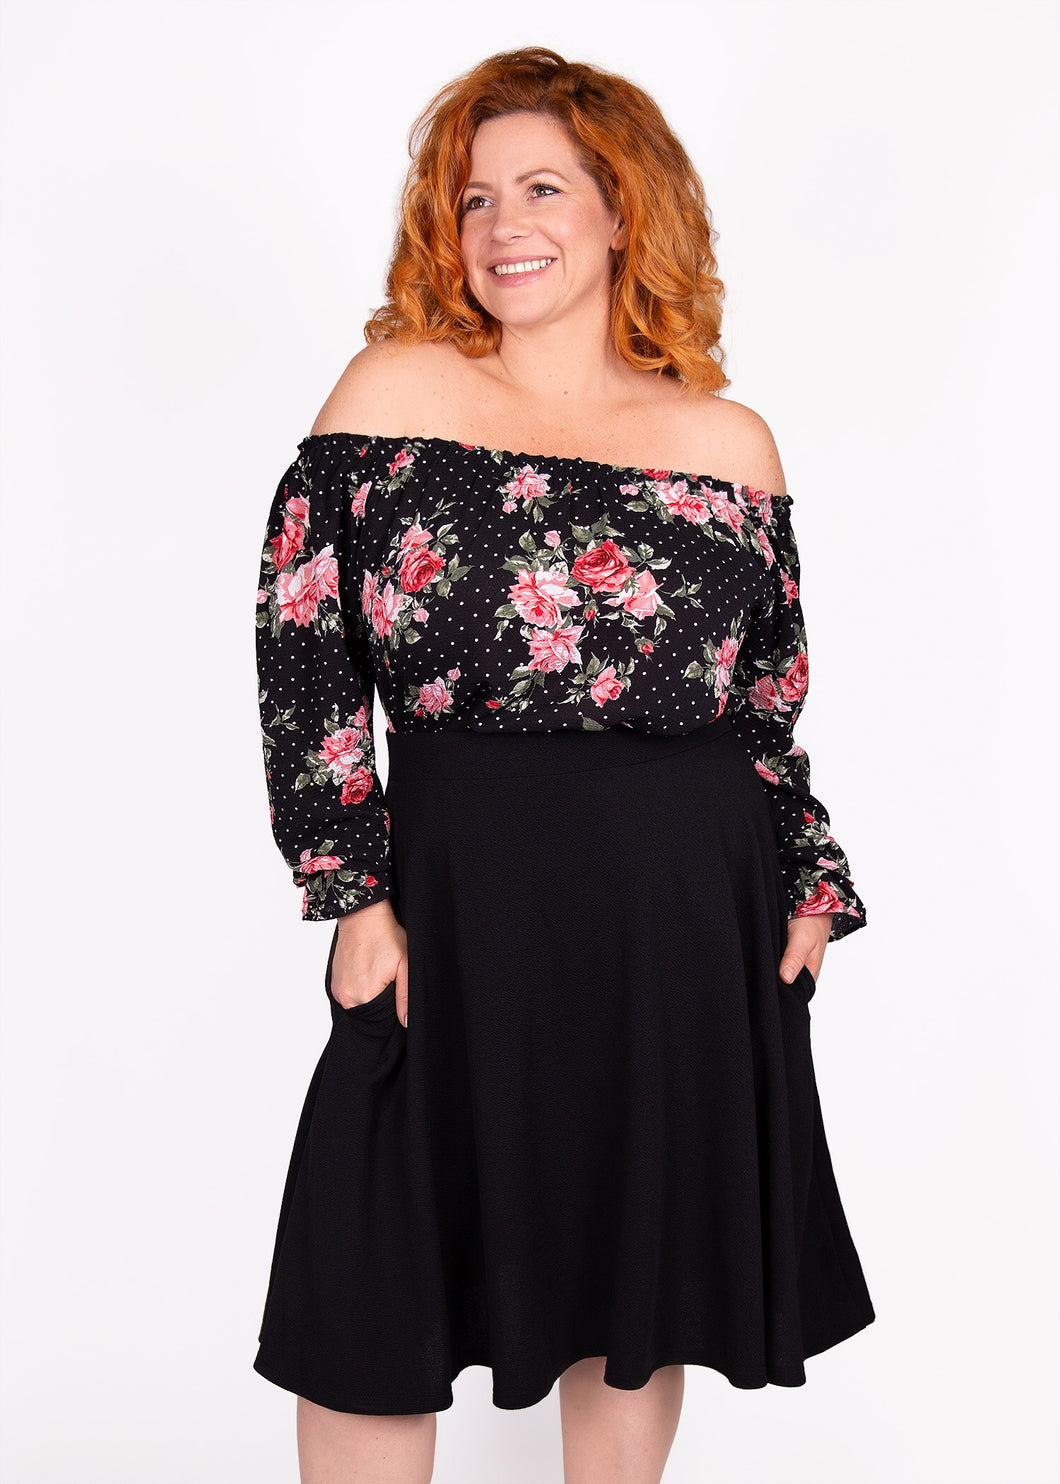 Bloom Skirt - Black - 1X